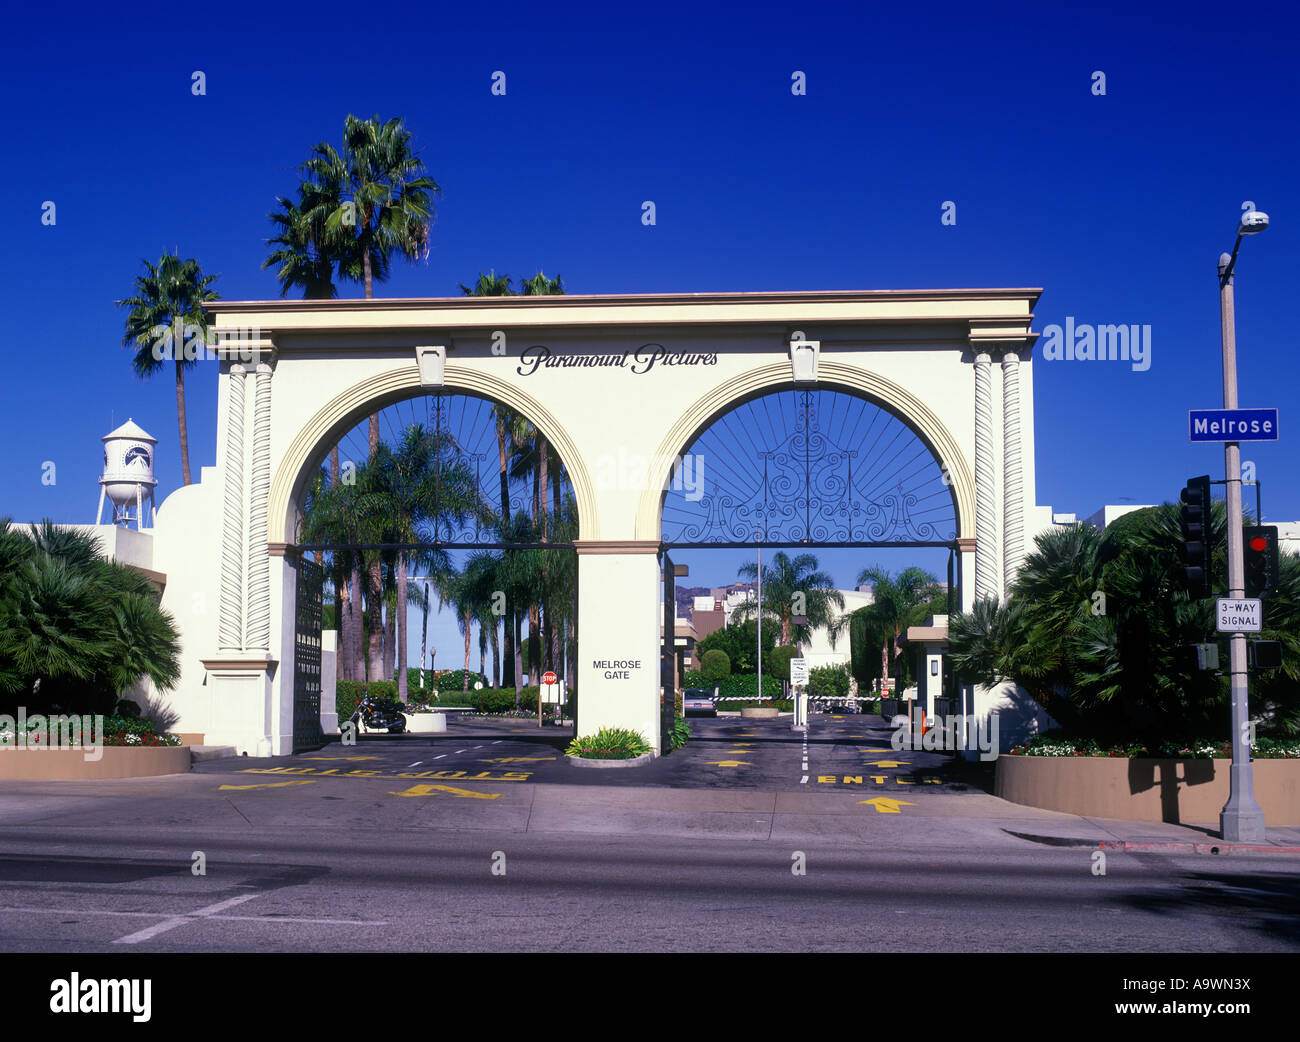 ENTRANCE GATE PARAMOUNT PICTURES MELROSE AVENUE HOLLYWOOD LOS ANGELES CALIFORNIA USA Stock Photo